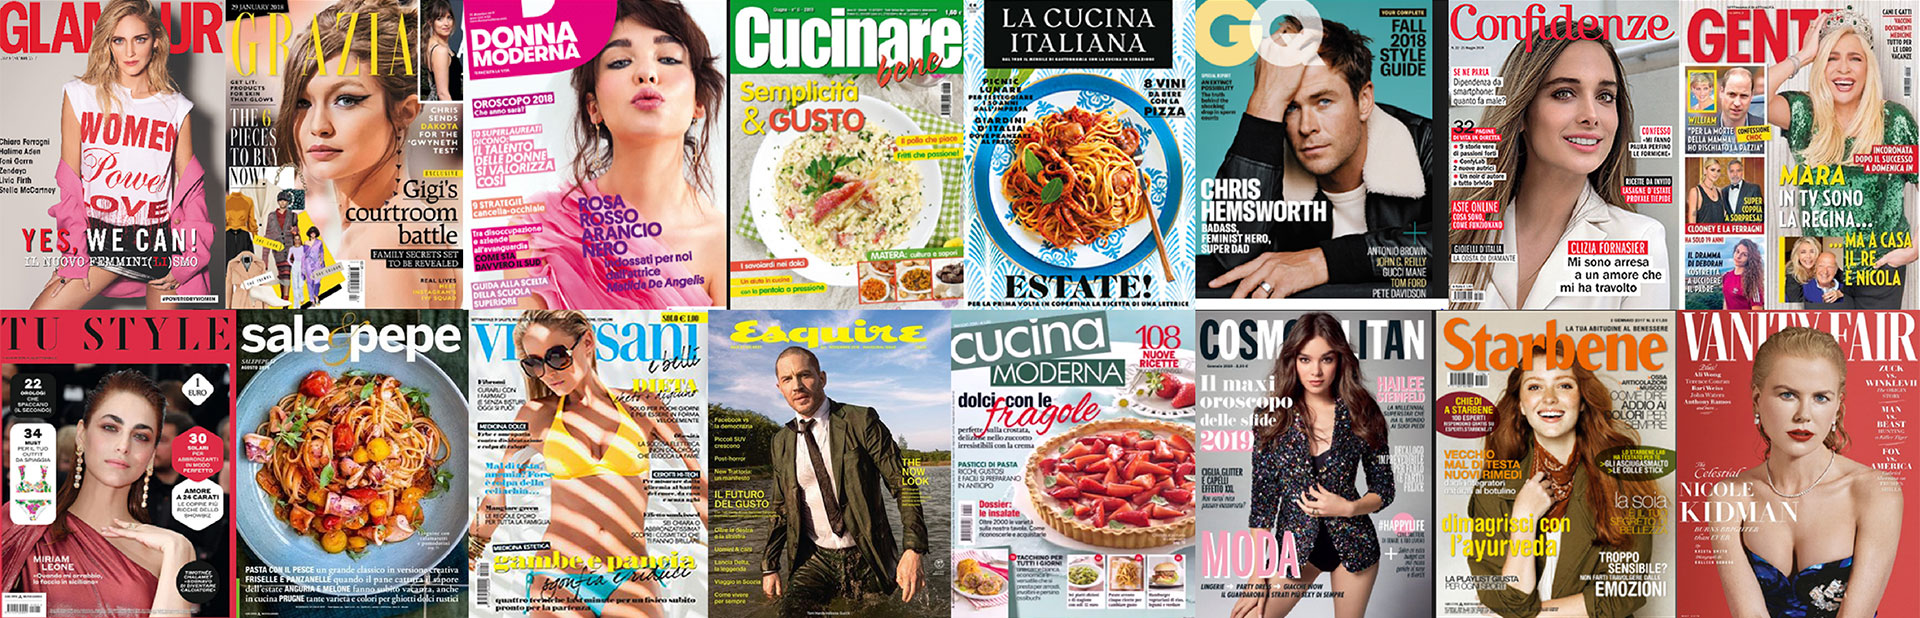 Italy magazine covers